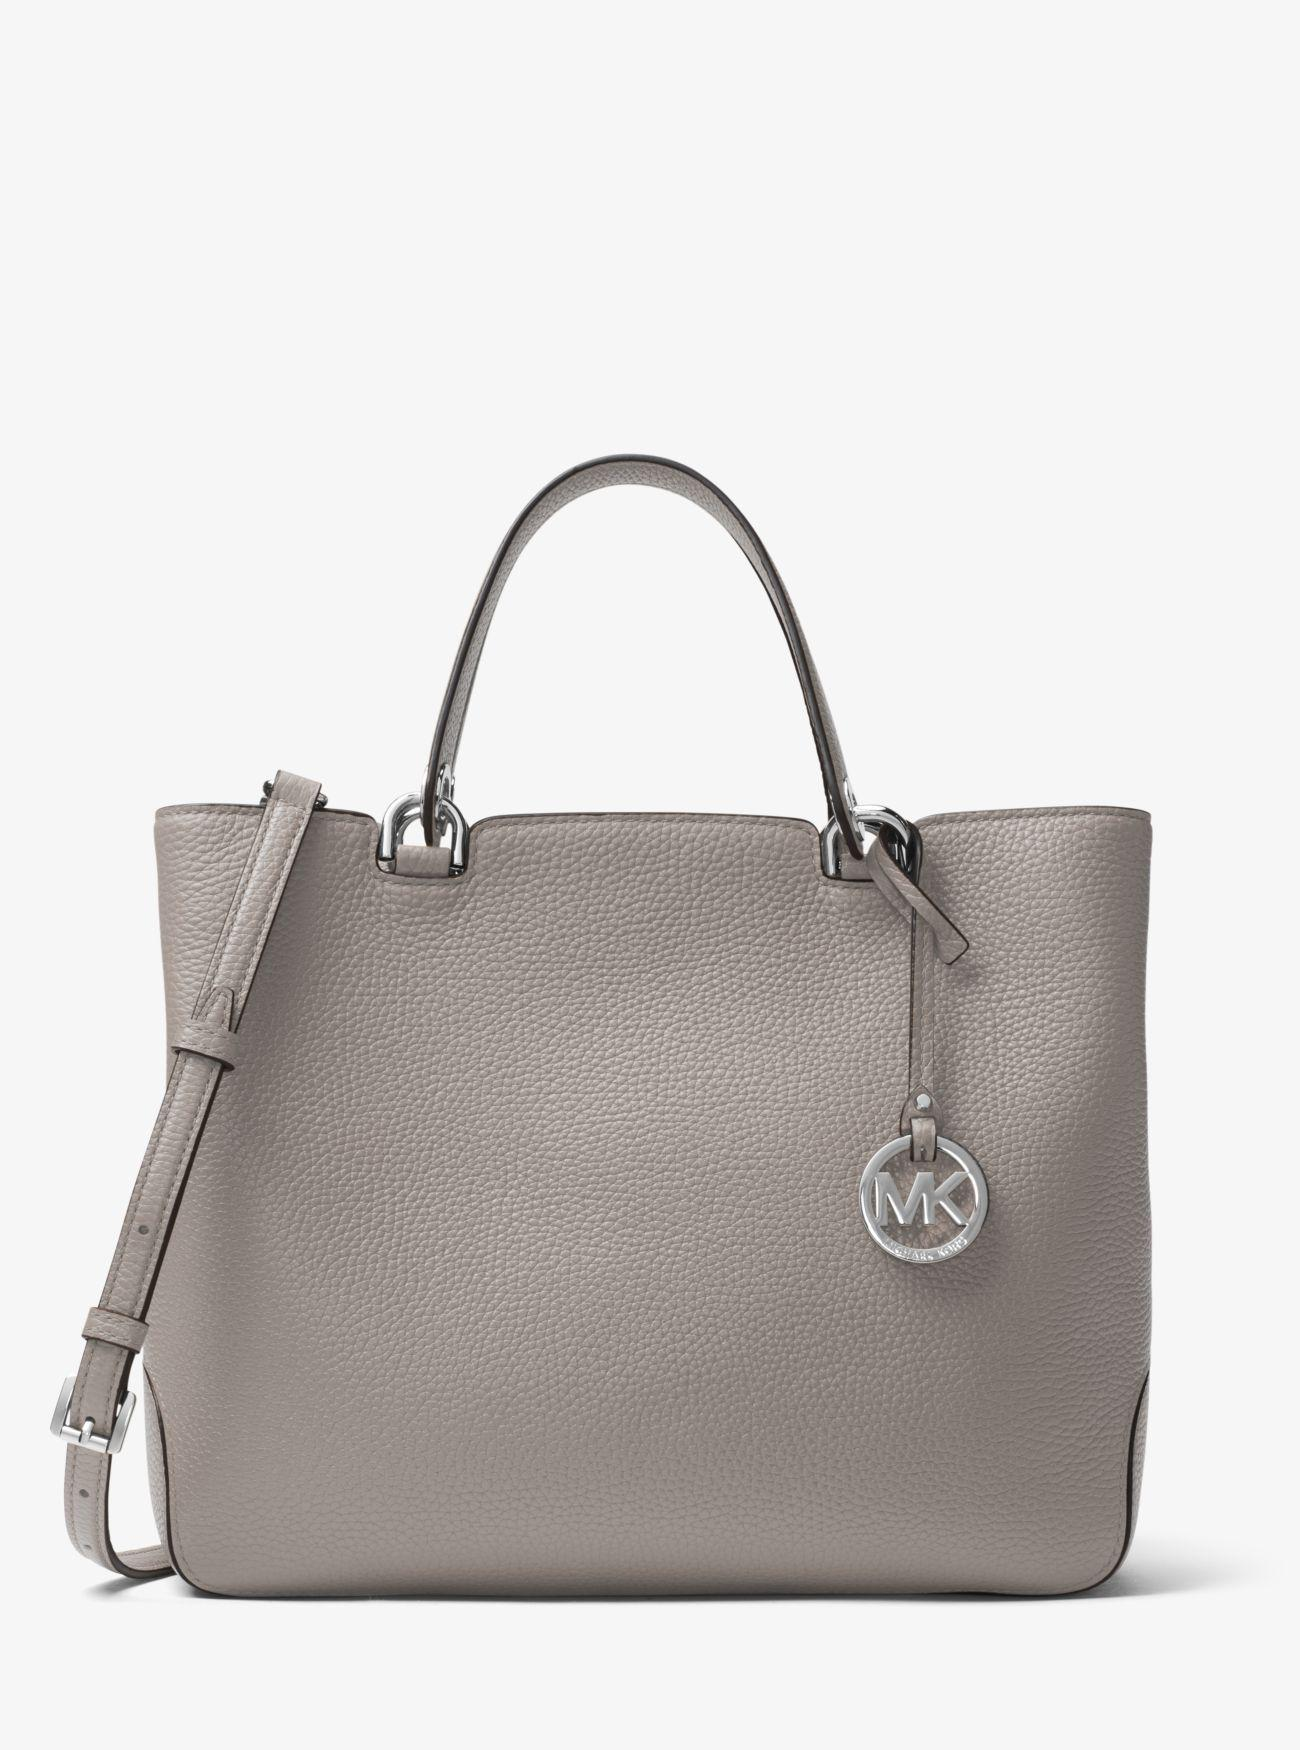 52ac856753033 Lyst - Michael Kors Anabelle Leather Tote in Gray